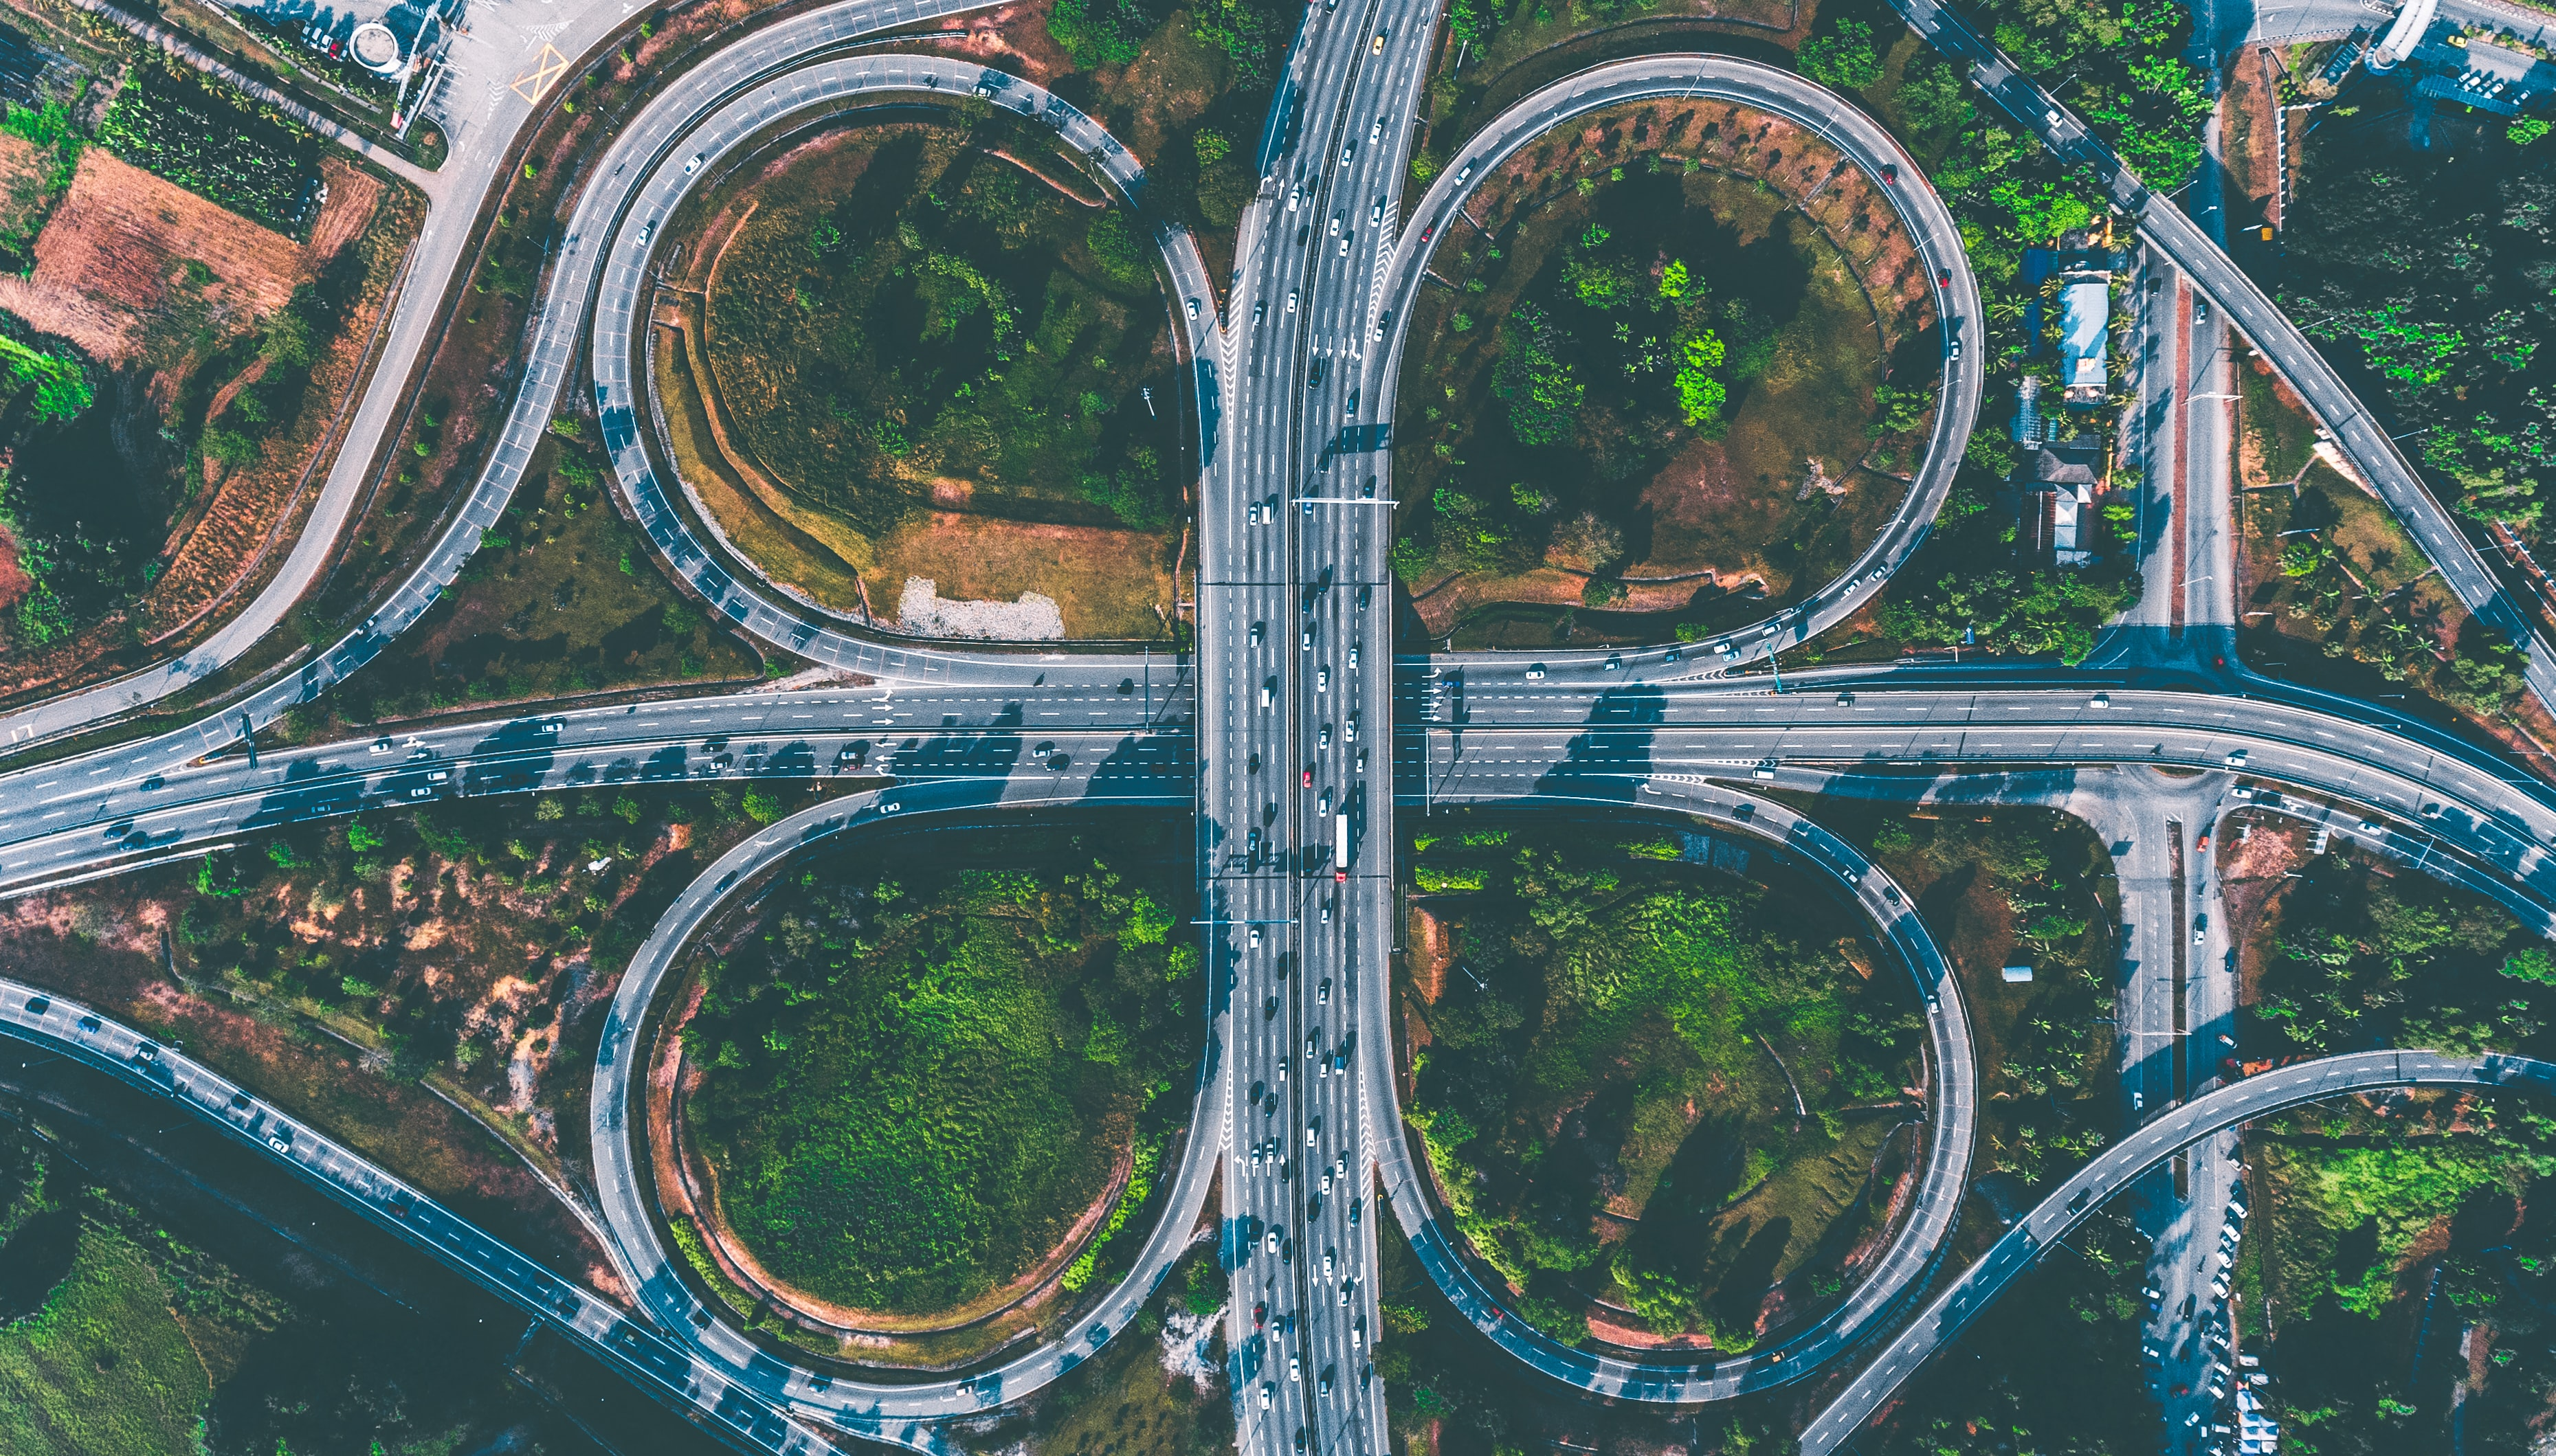 bird's eye view of freeway